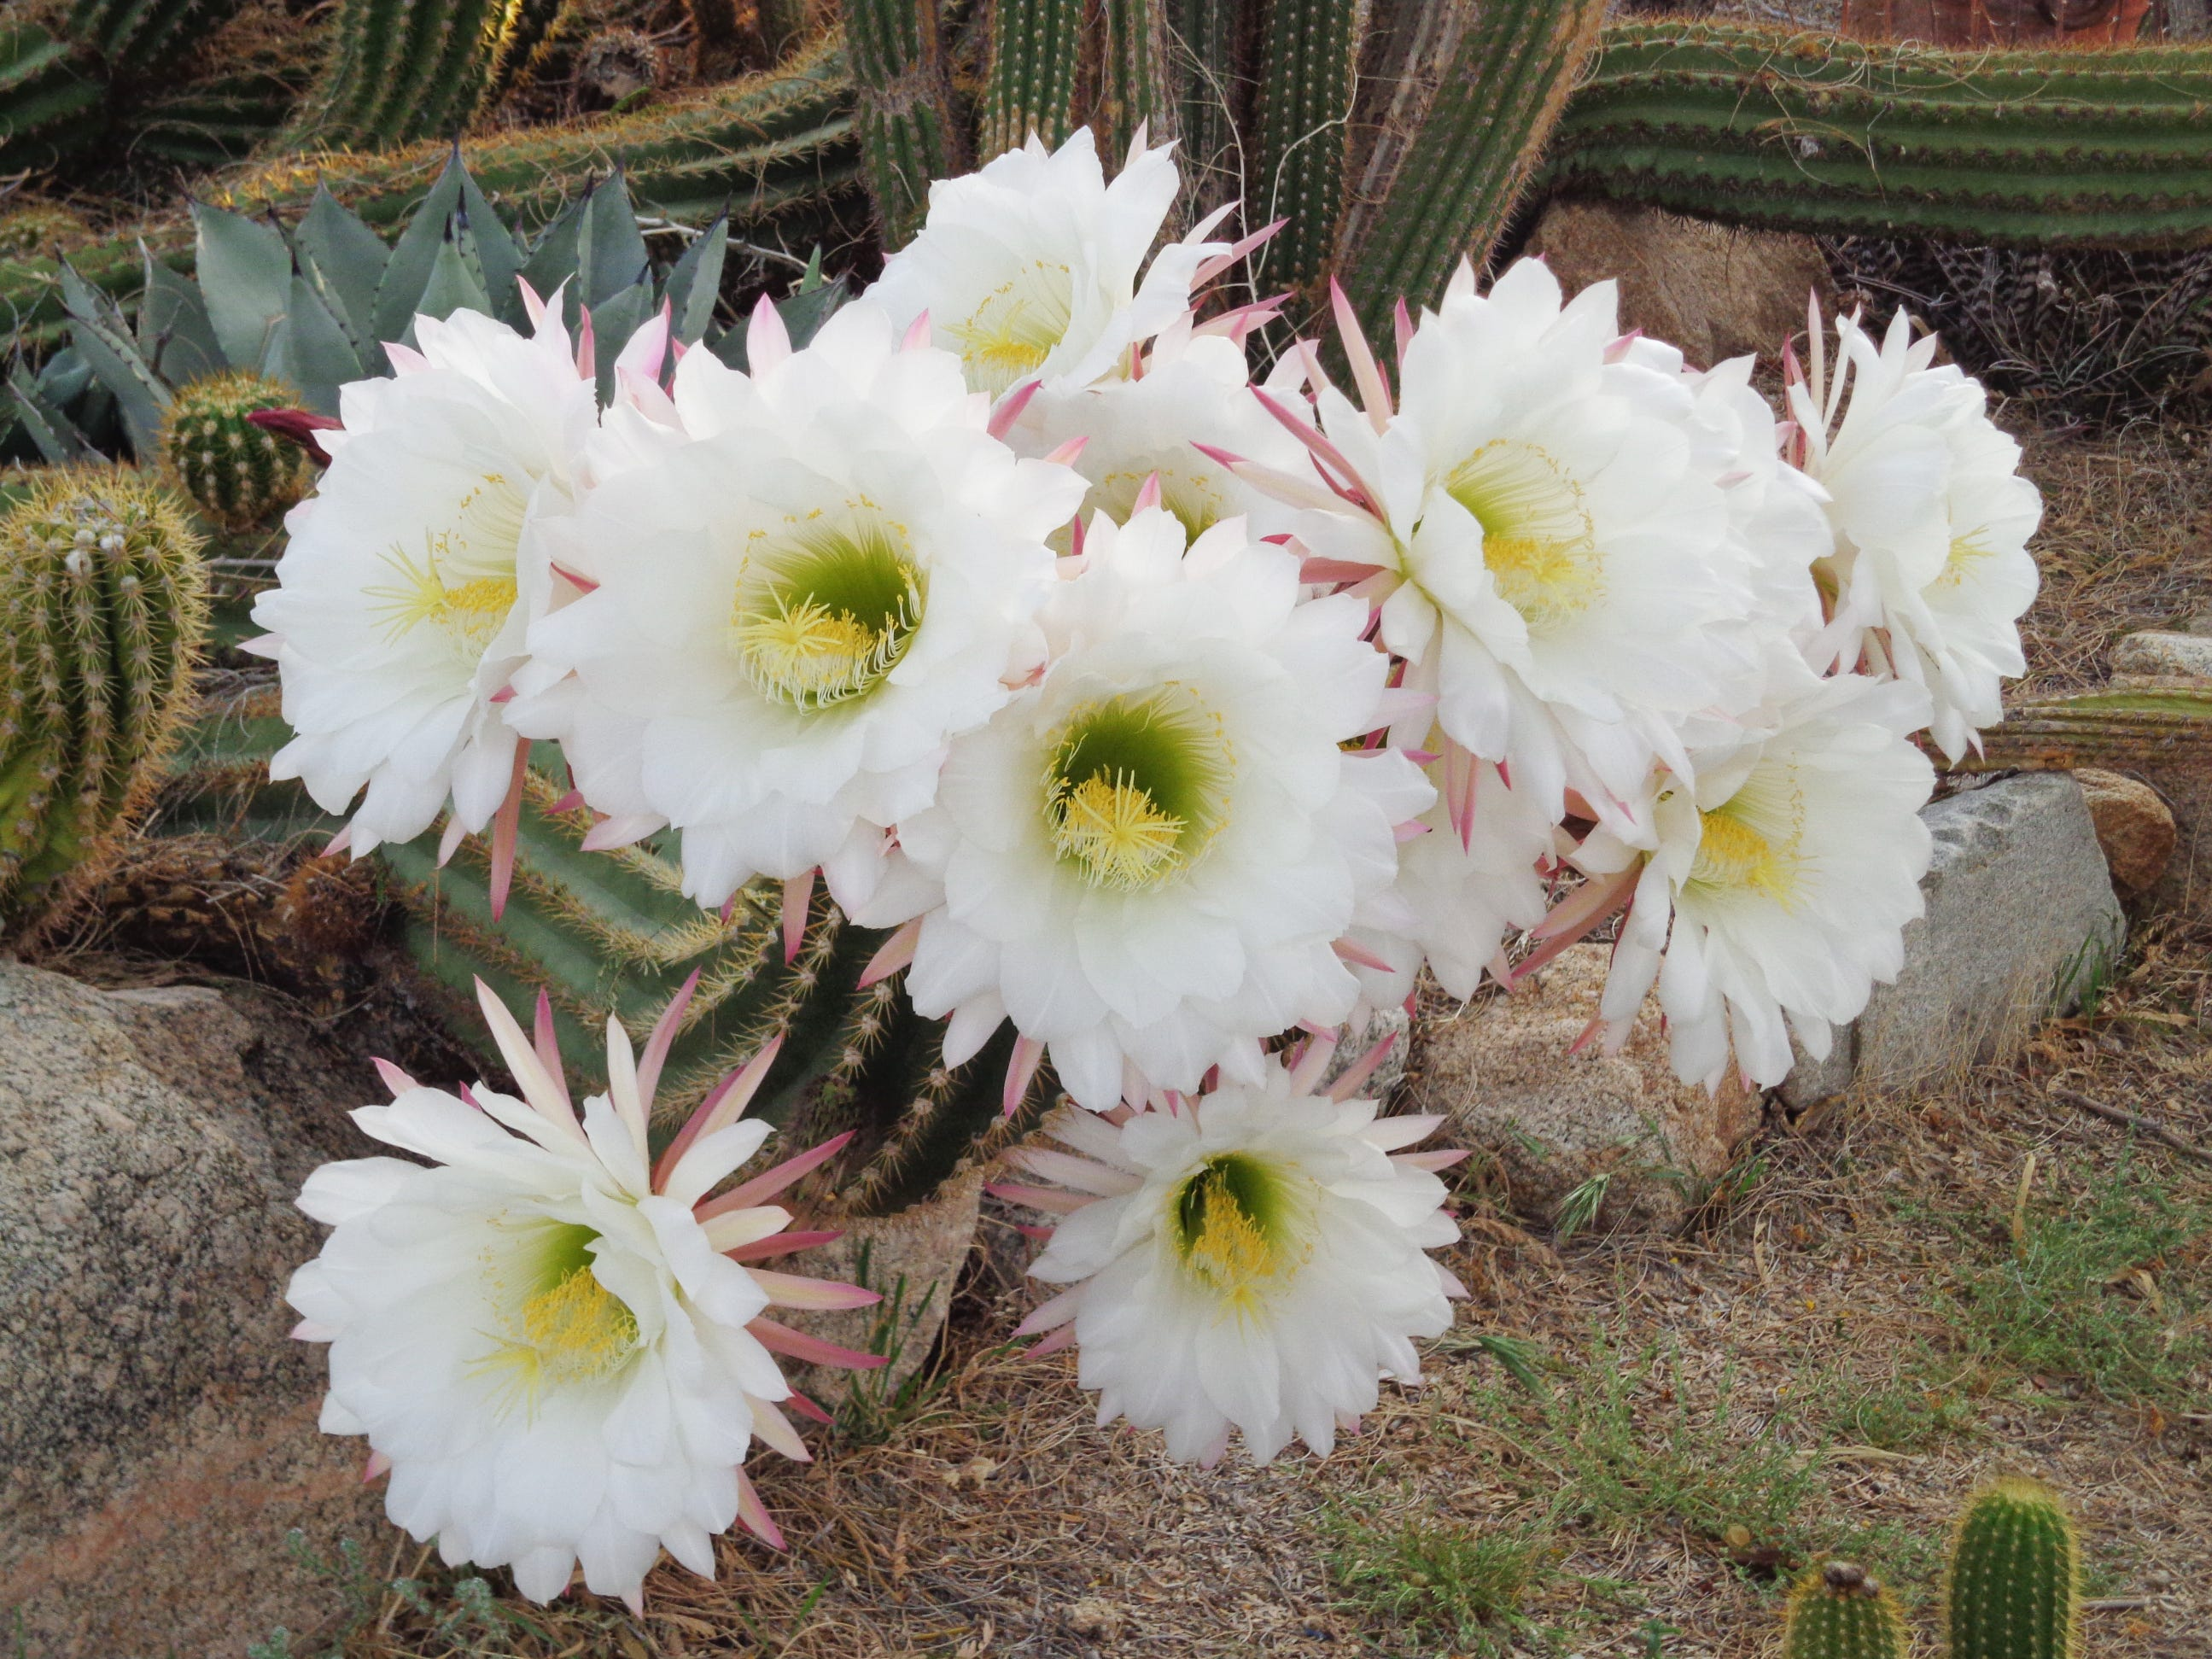 All these flowers are produced on a single stem of Echinopsis candicans.